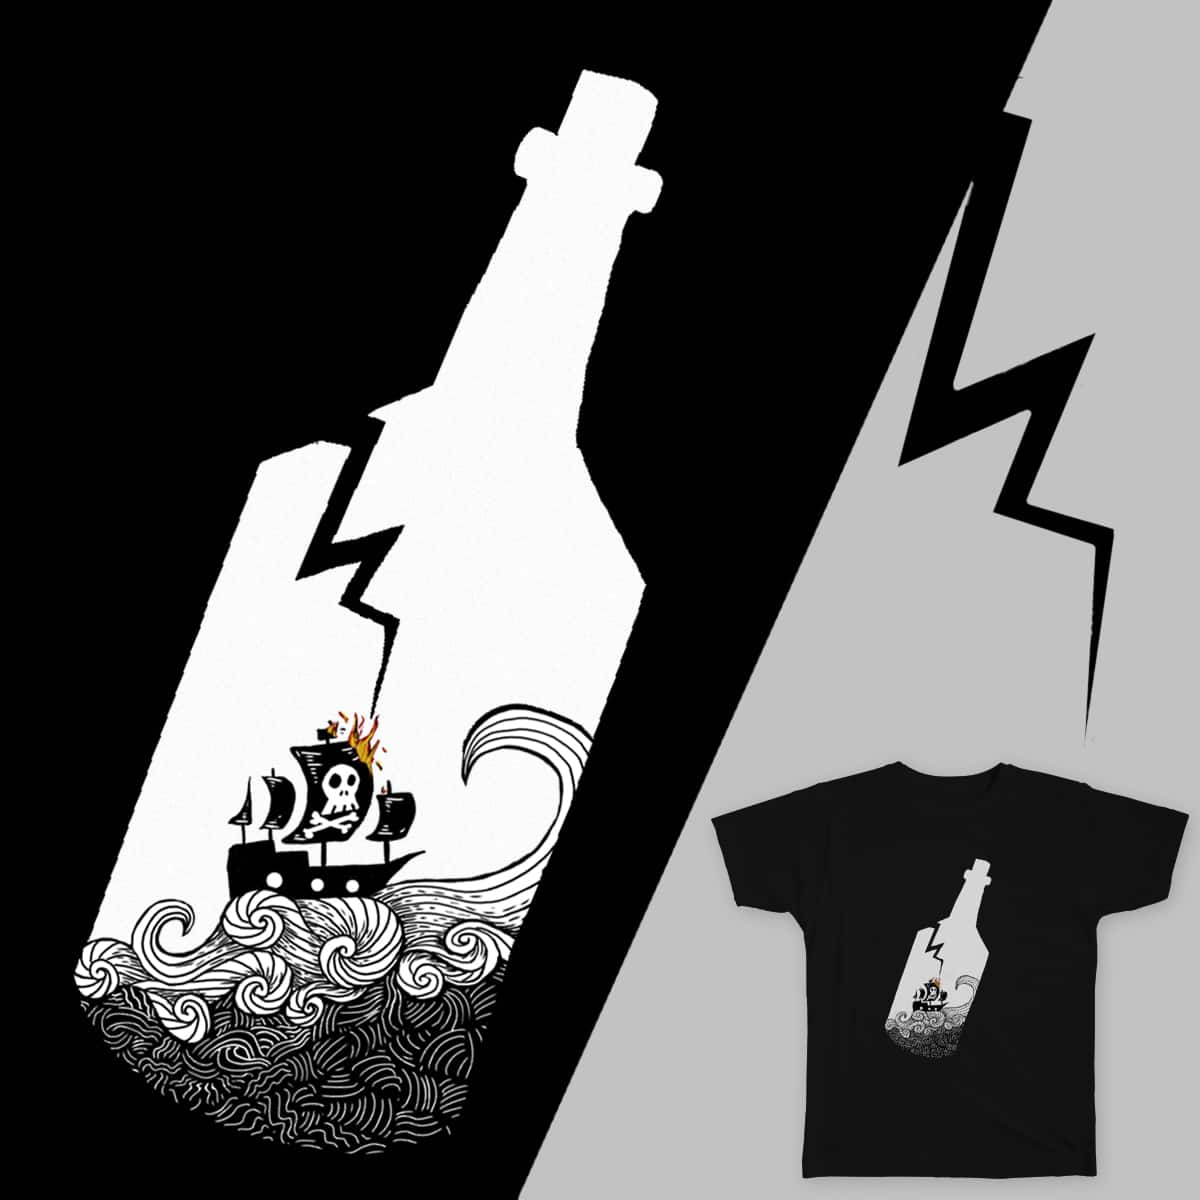 There's a Storm A-Brewin' by KSheheen on Threadless